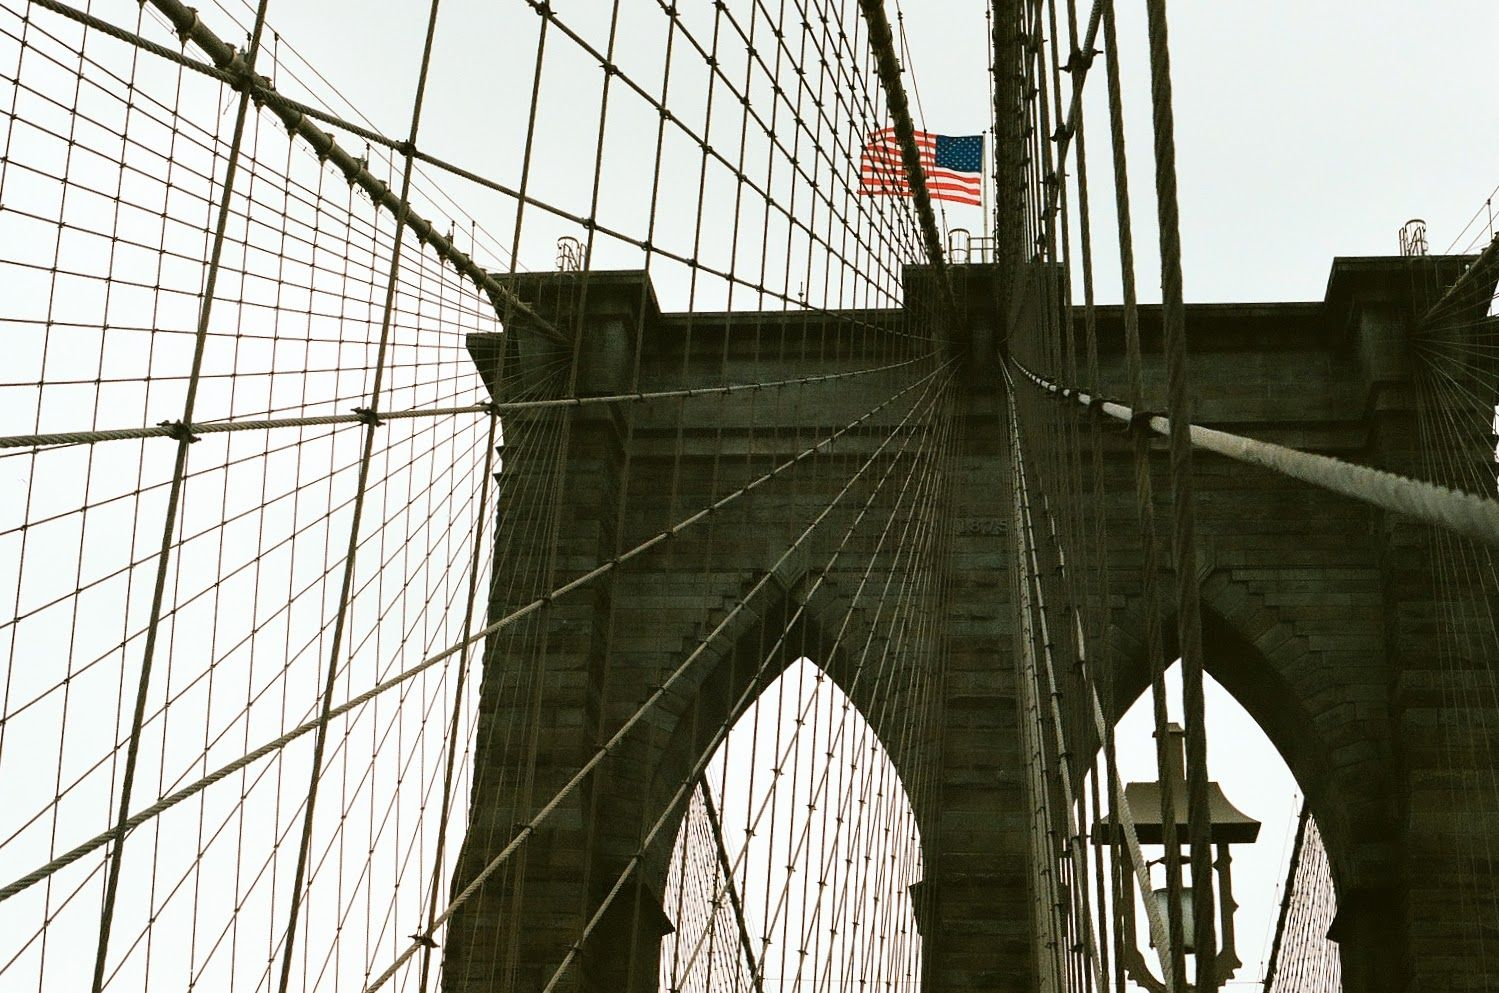 ITAP of The Stars and Stripes atop the Brooklyn Bridge#PHOTO #CAPTURE #NATURE #INCREDIBLE